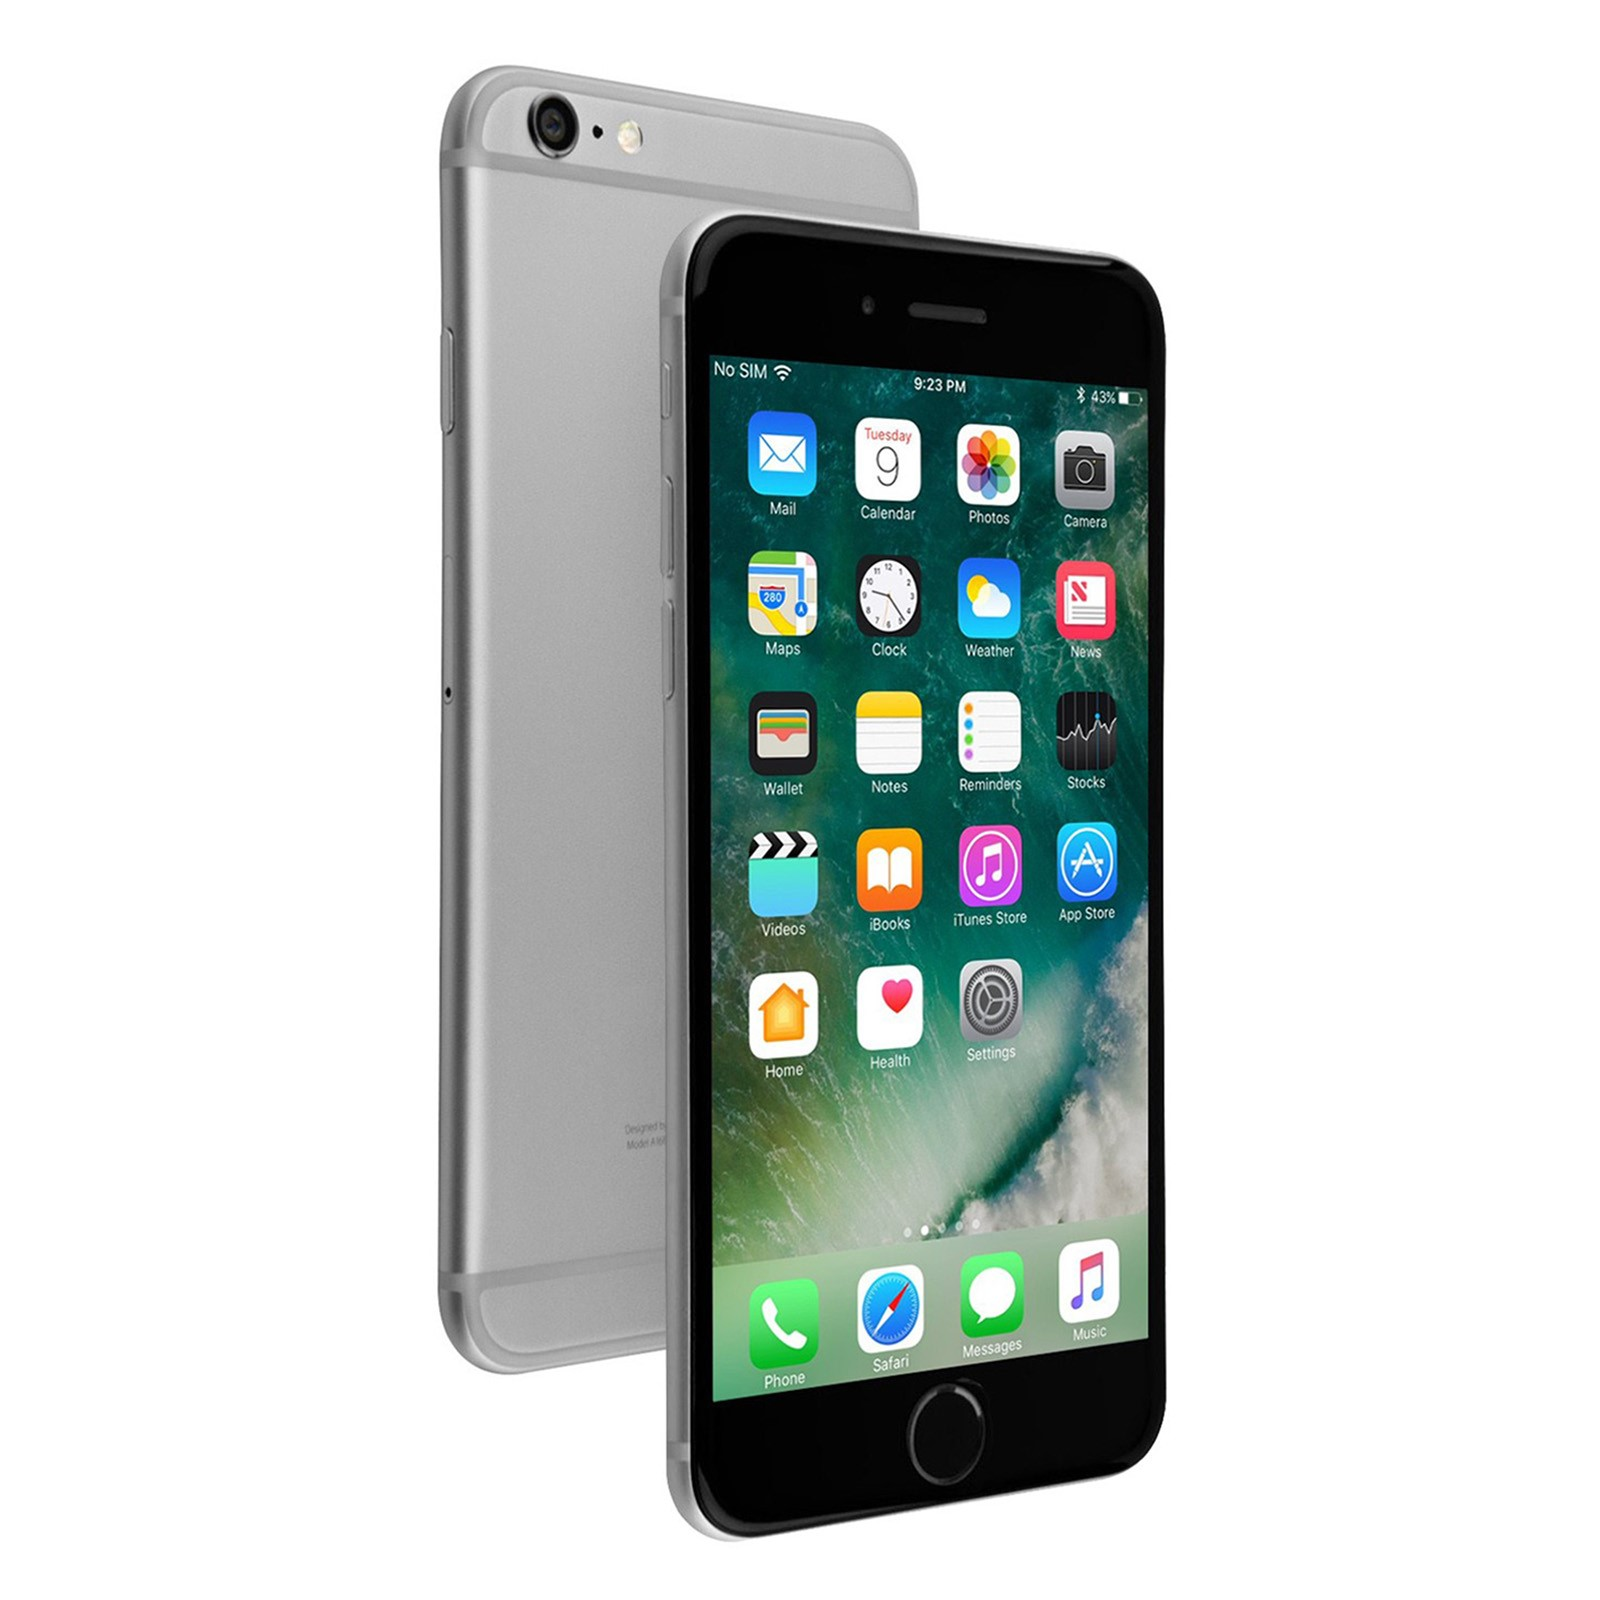 apple iphone 6s plus 16gb gsm factory unlocked 4g lte 12mp camera smartphone ebay. Black Bedroom Furniture Sets. Home Design Ideas